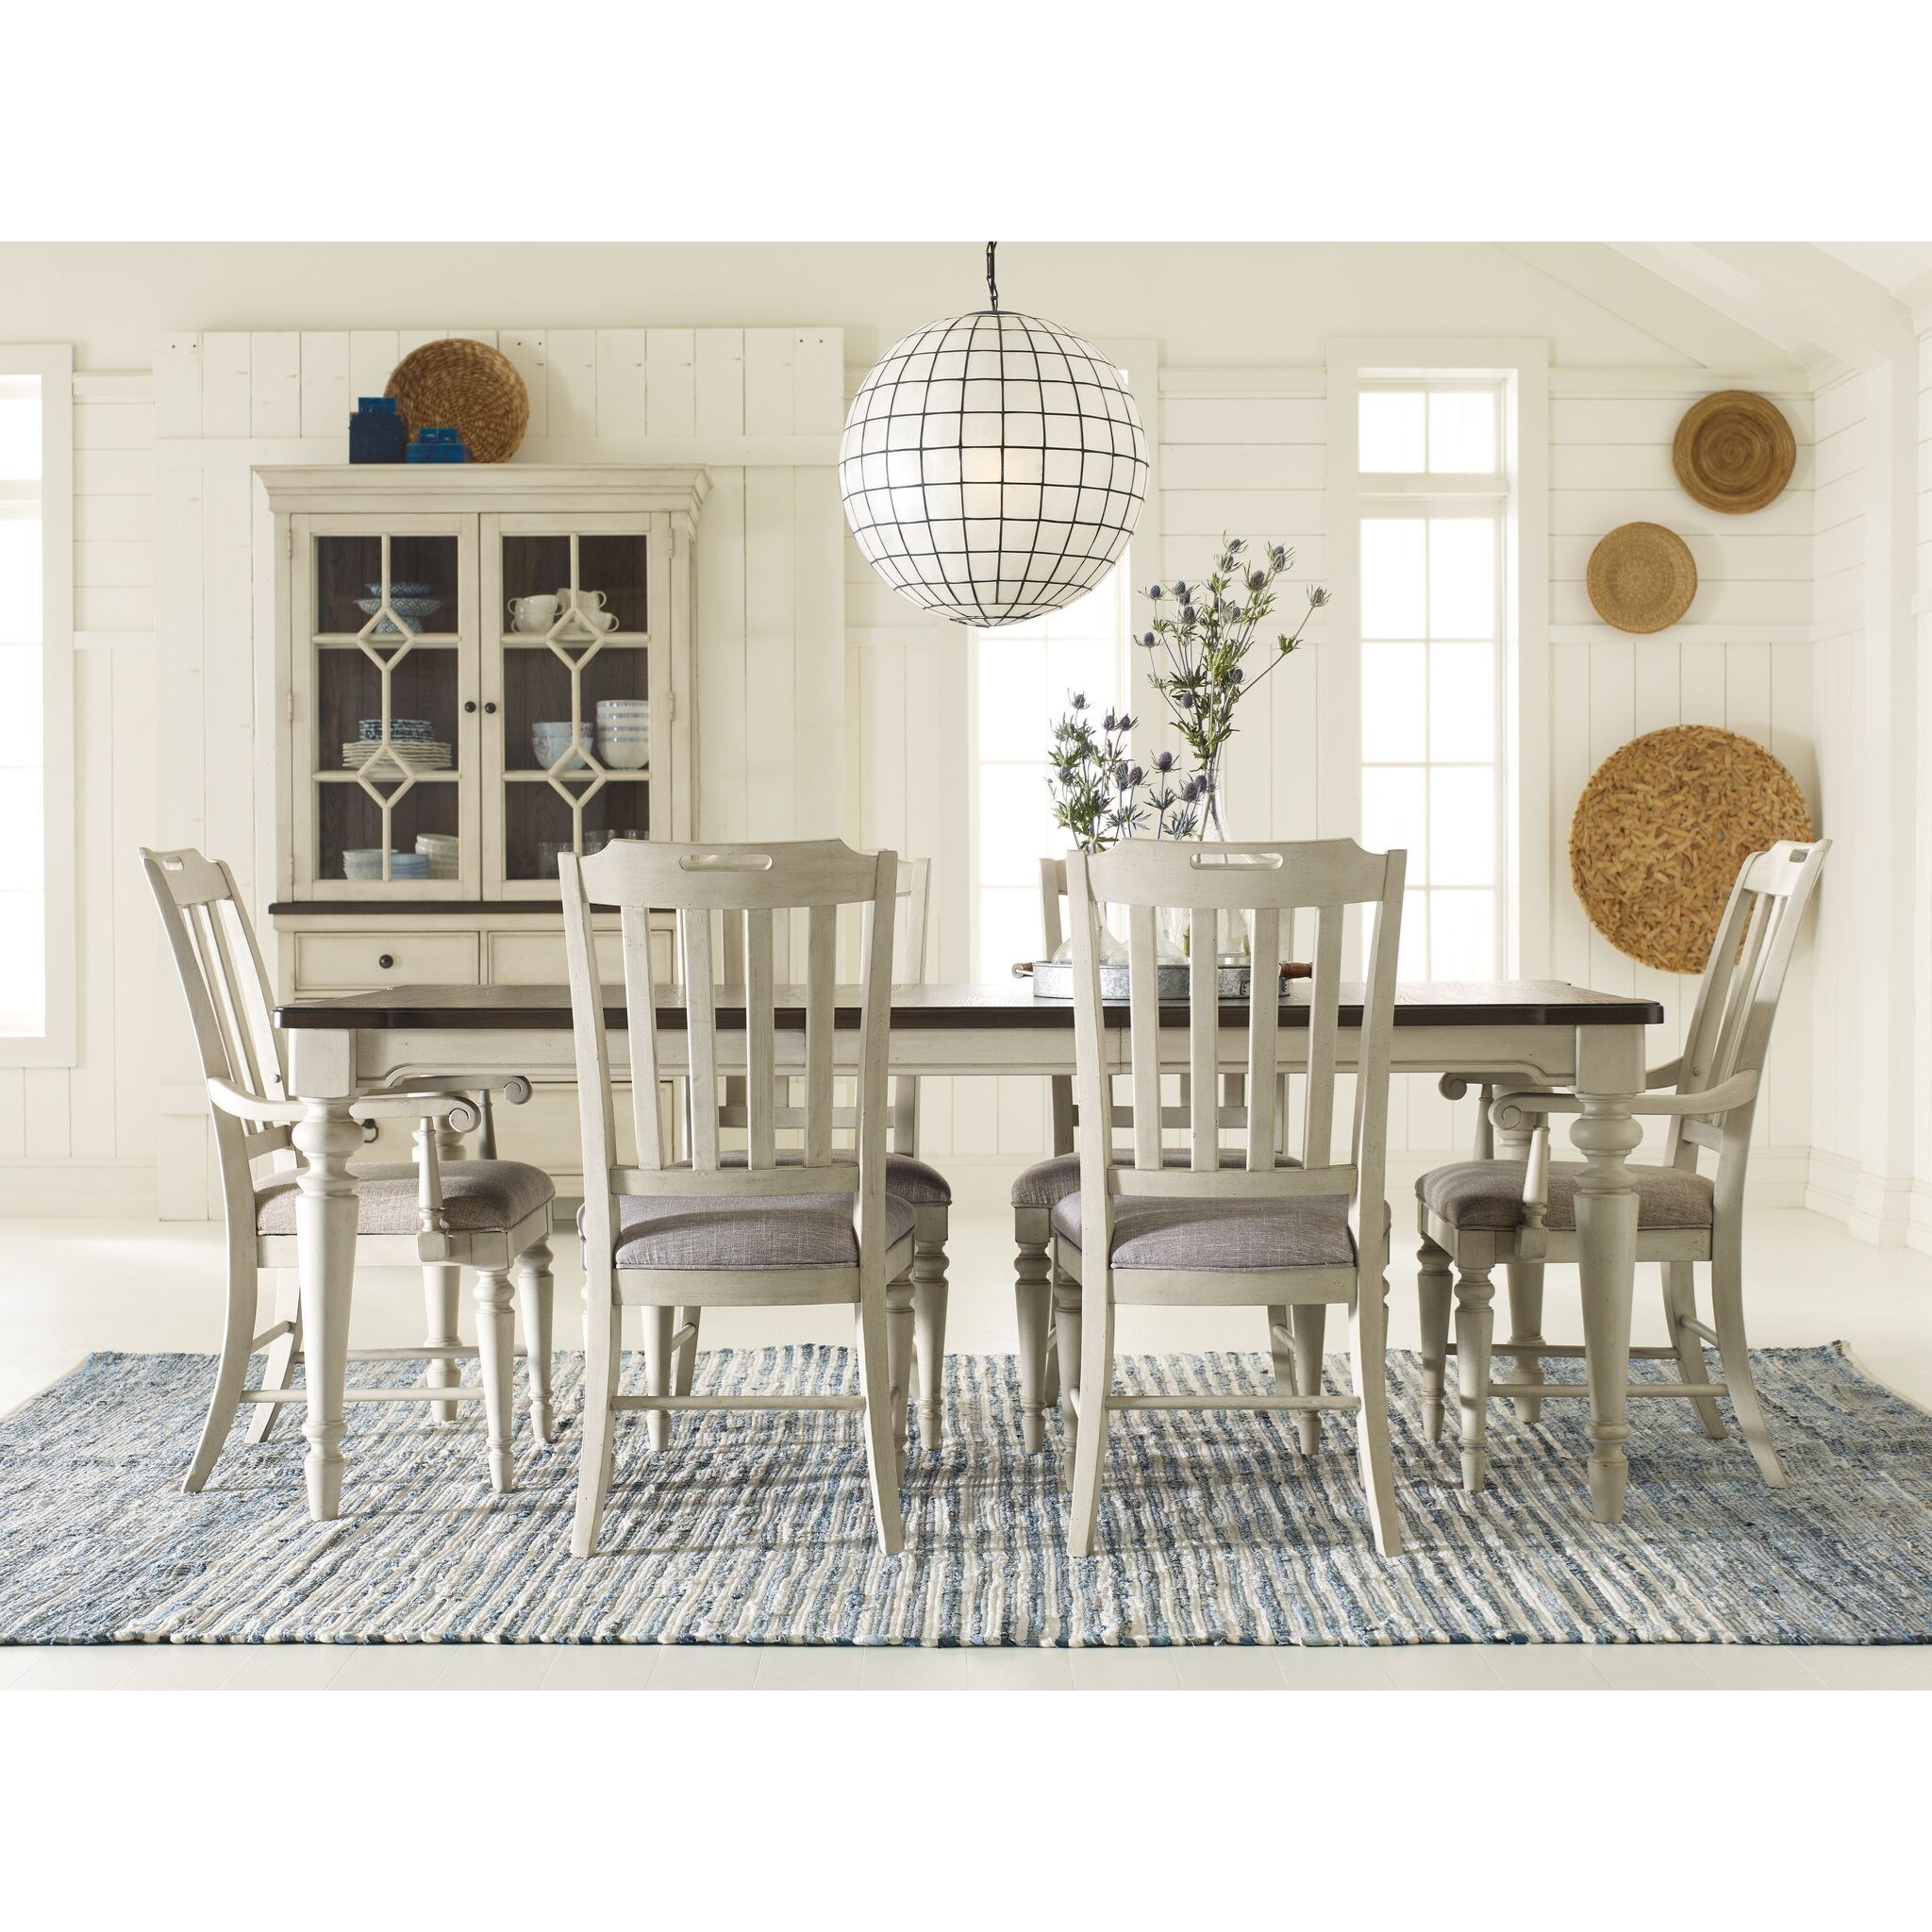 Brookhaven Formal Dining Room Group by Legacy Classic at Johnny Janosik